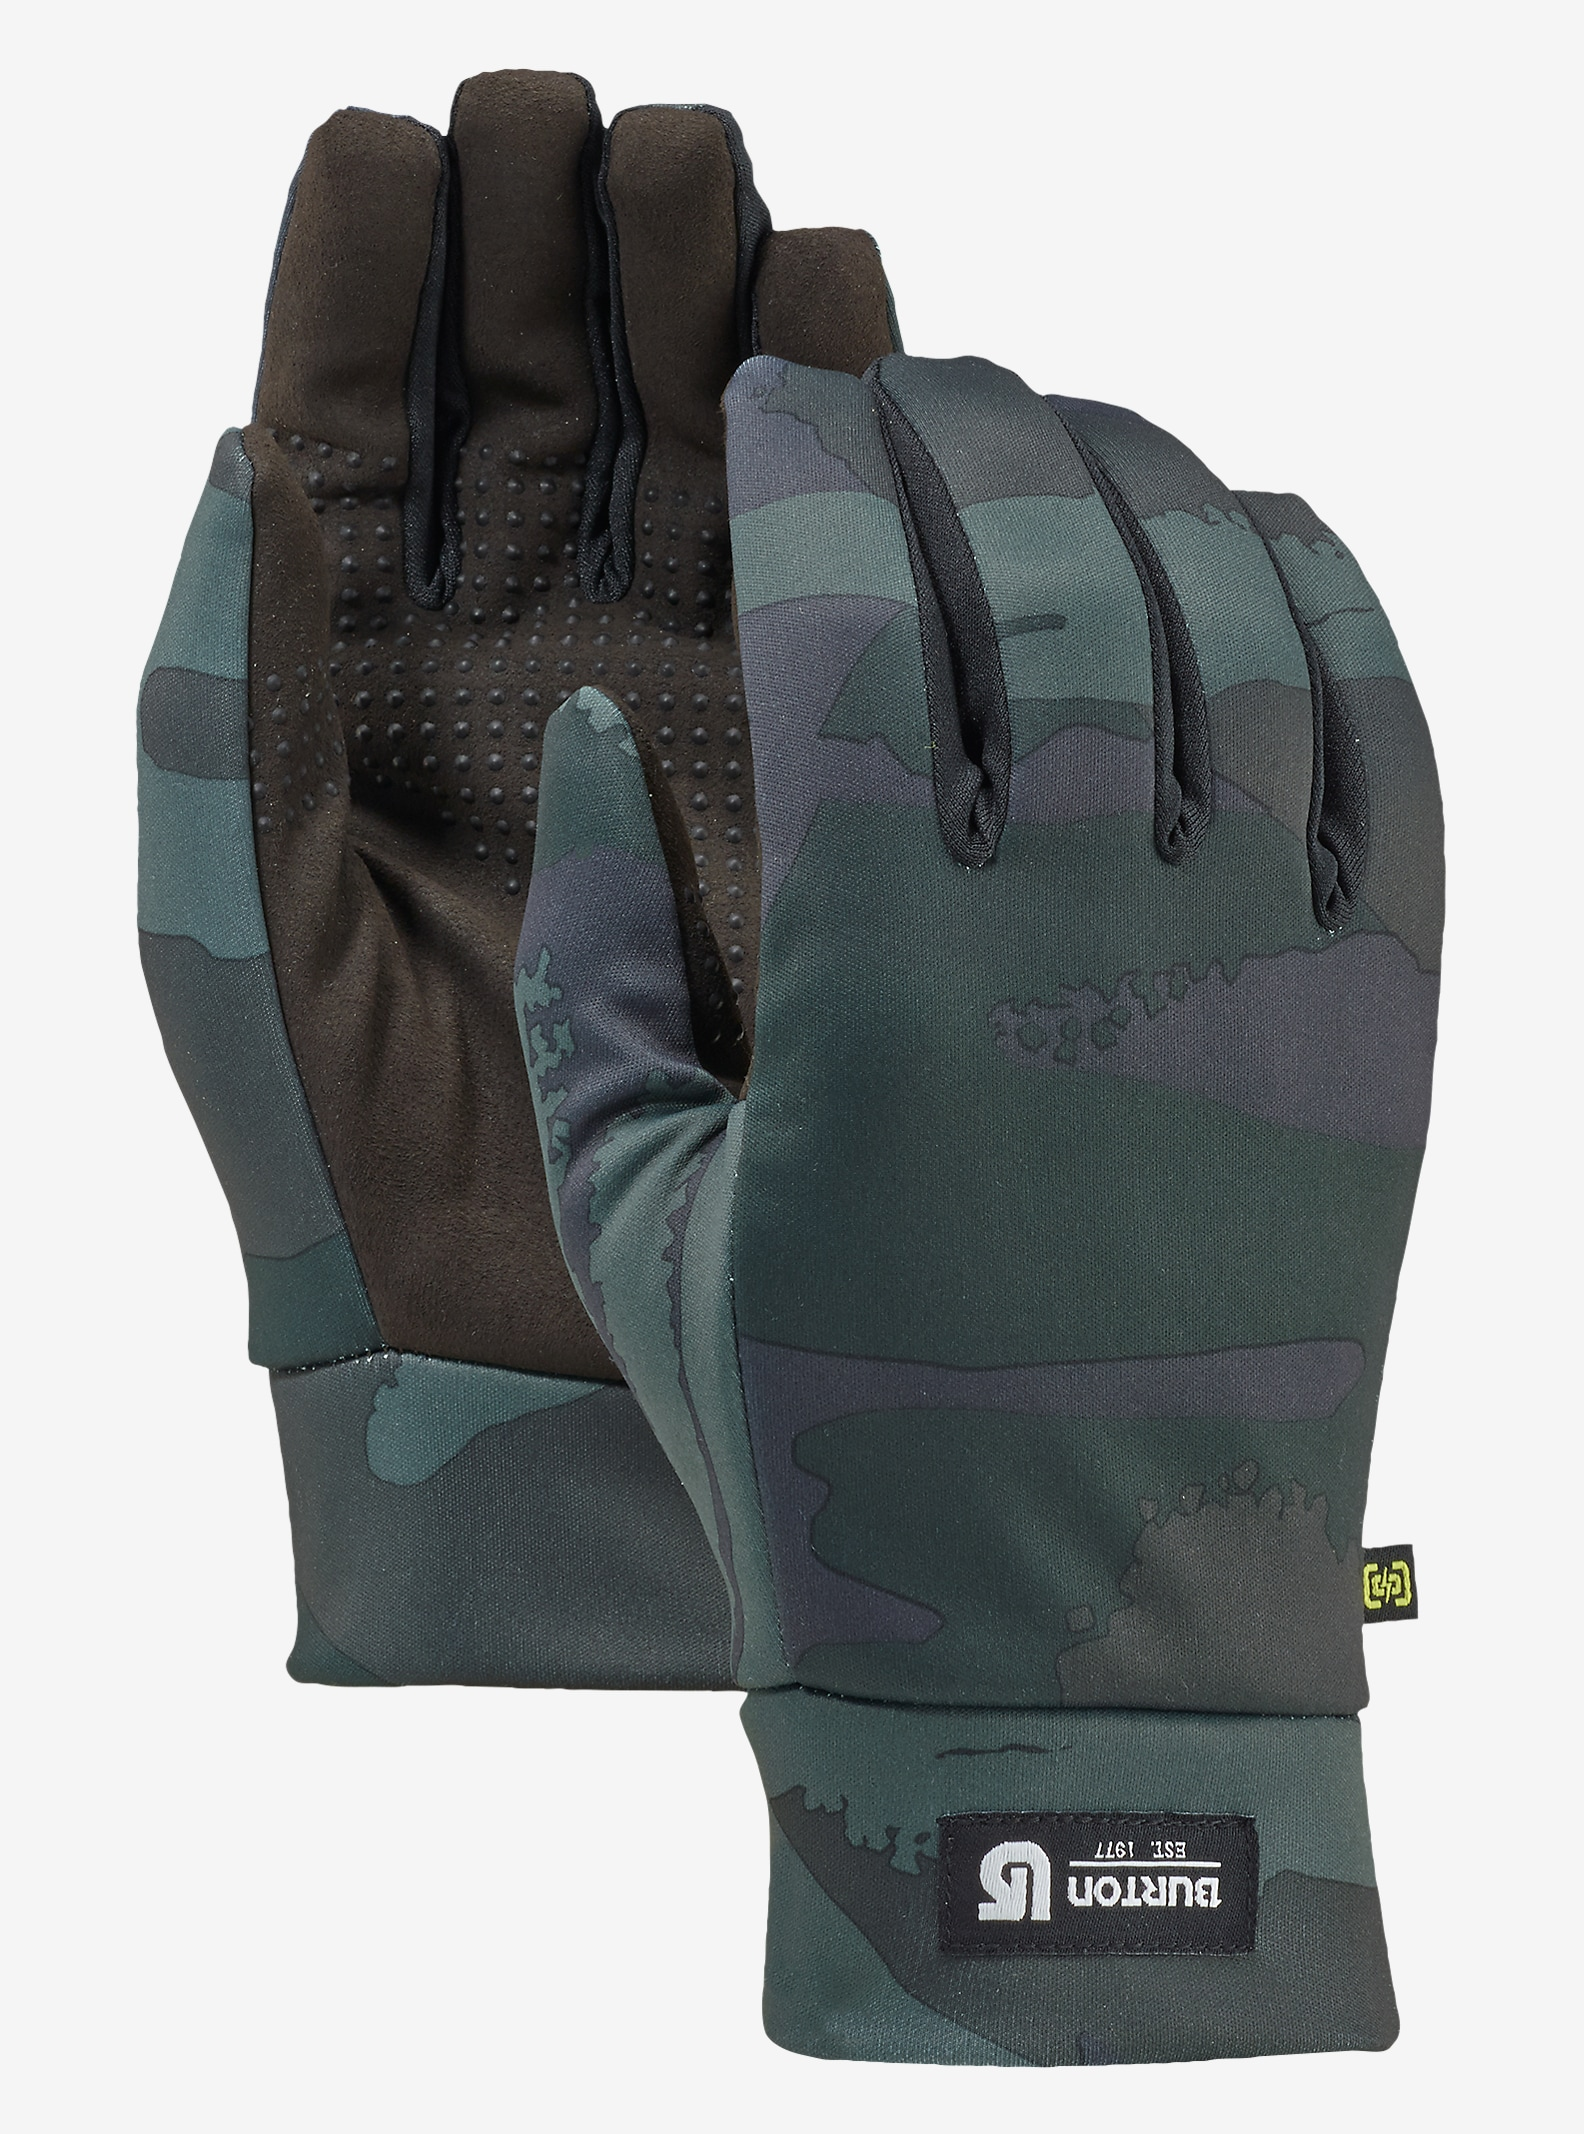 Burton Touch N Go Glove shown in Beetle Derby Camo